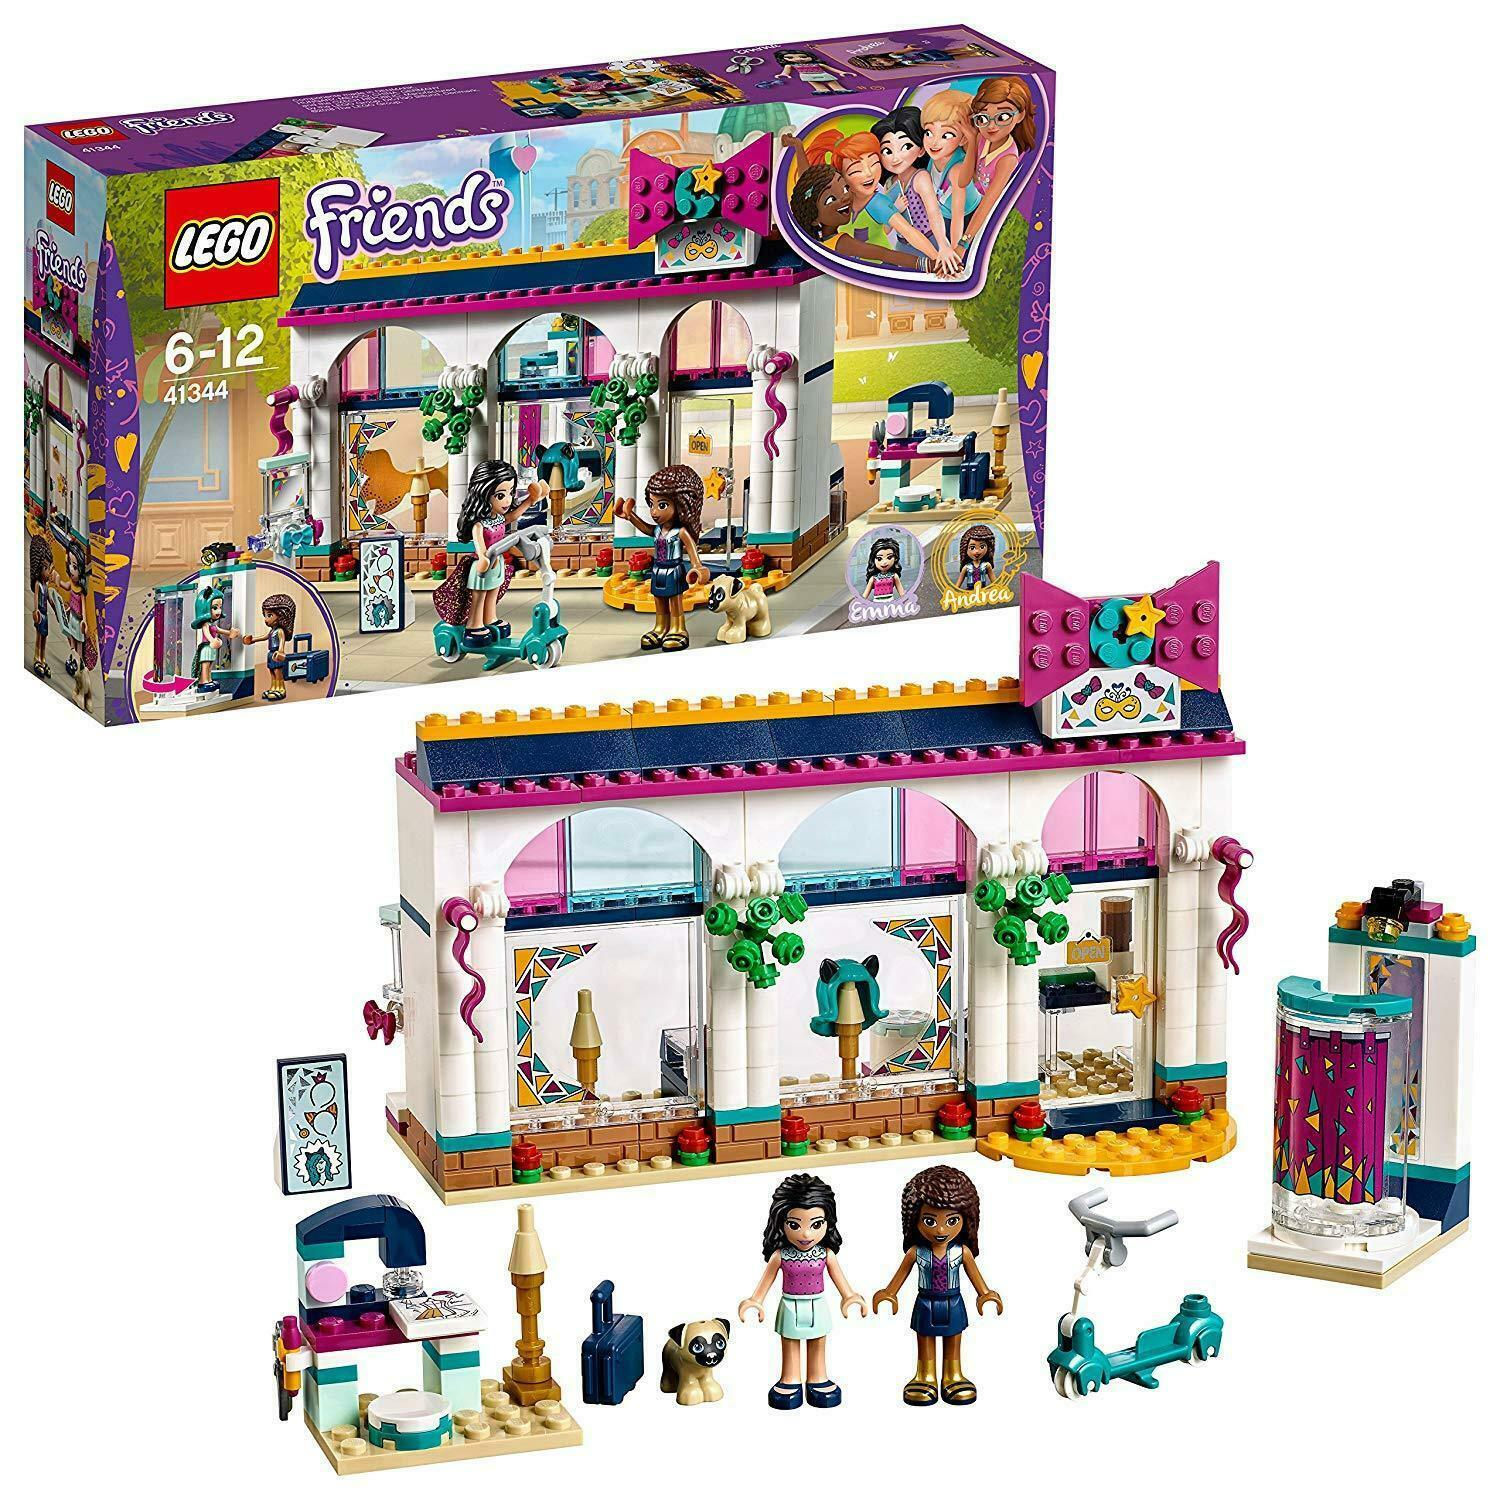 LEGO Friends Andrea' Accessories Store Building Toy Trendy Items Kids Playset